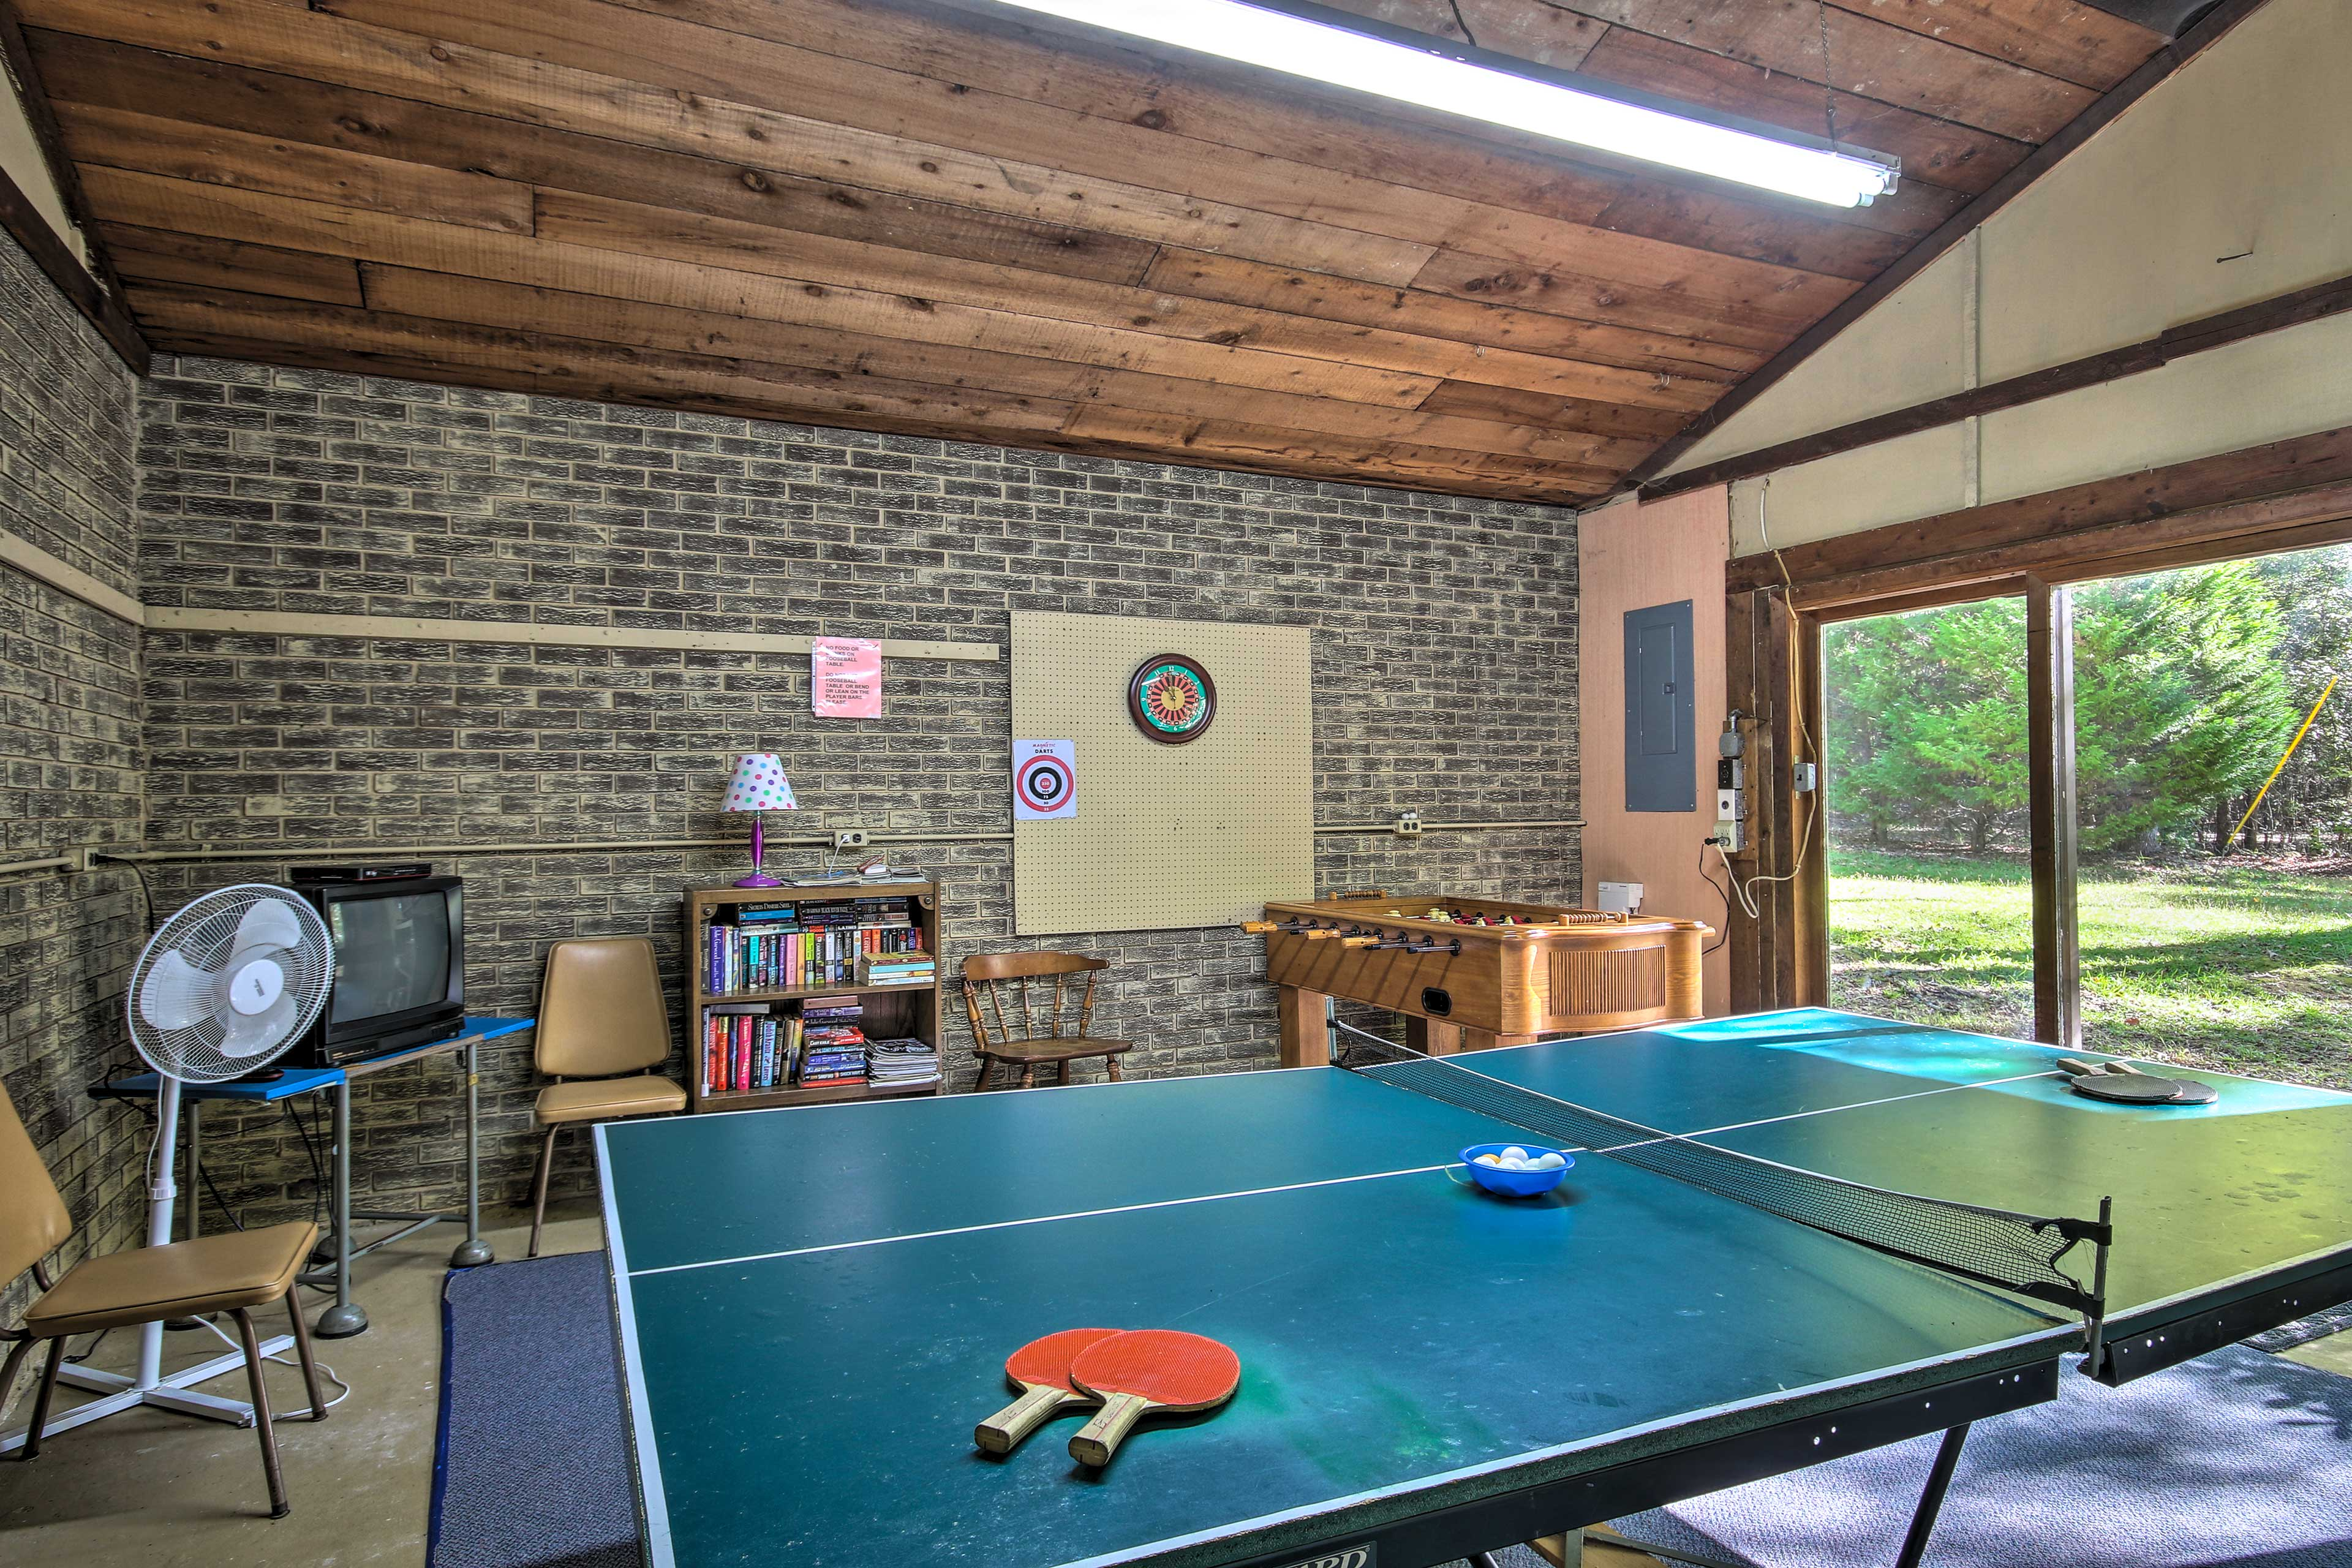 This 3-bedroom, 3-bath home for 6 has wonderful amenities for an exciting stay.